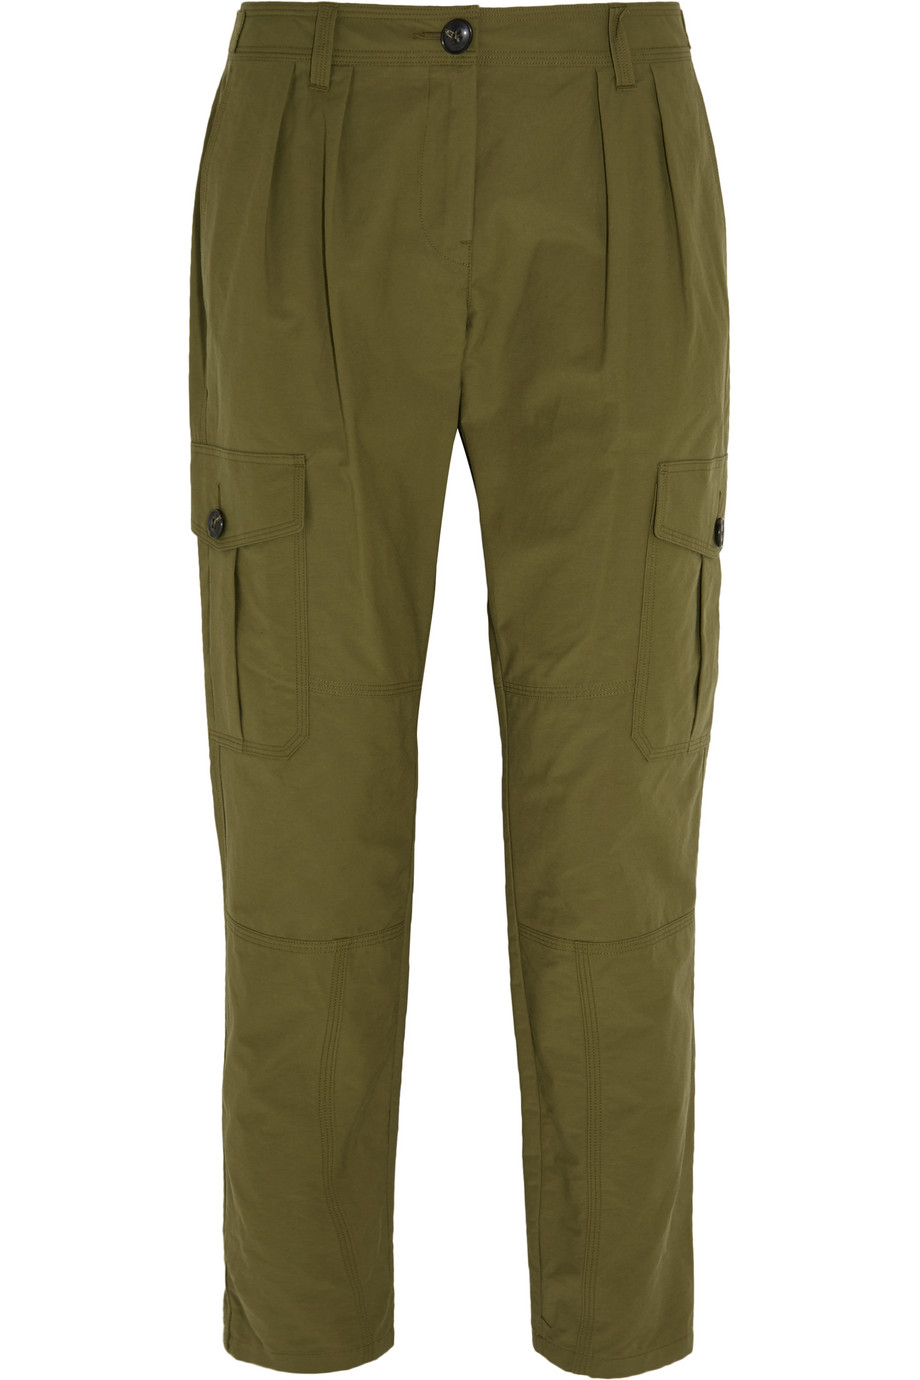 Burberry Brit Pleated Cotton-Blend Tapered Pants, Army Green, Women's, Size: 4